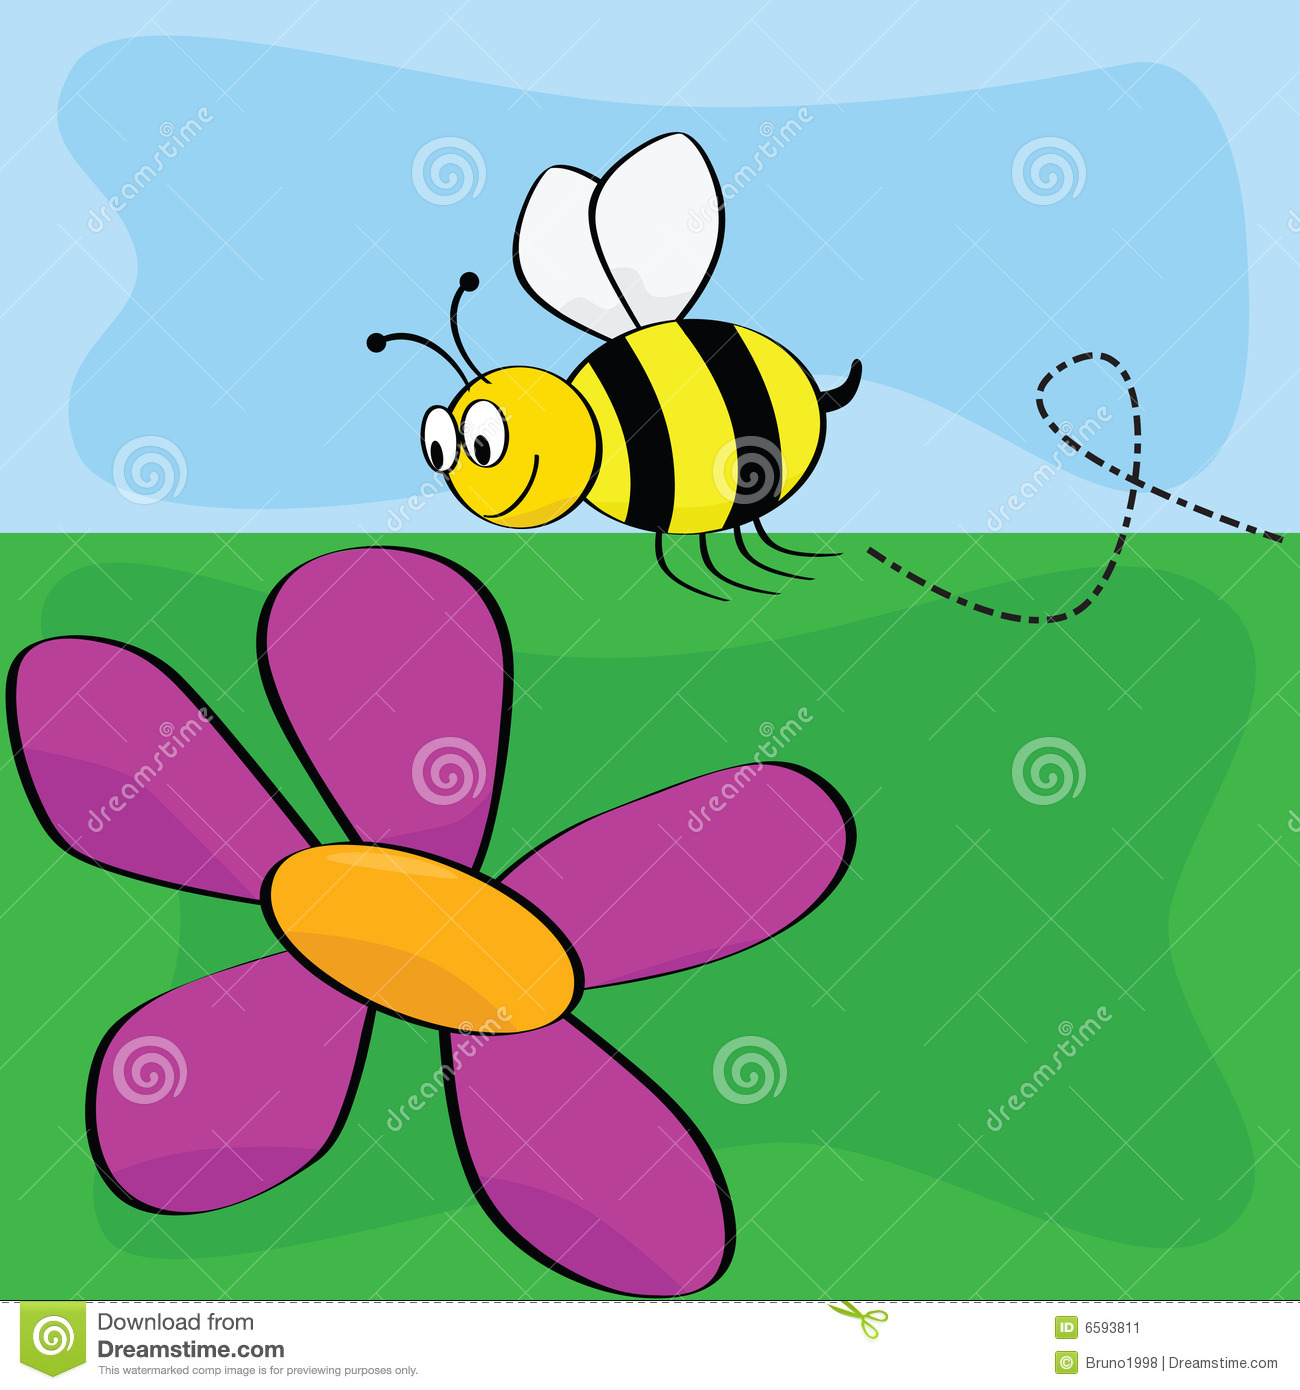 Cartoon Bee Flying Near Flower Stock Image.